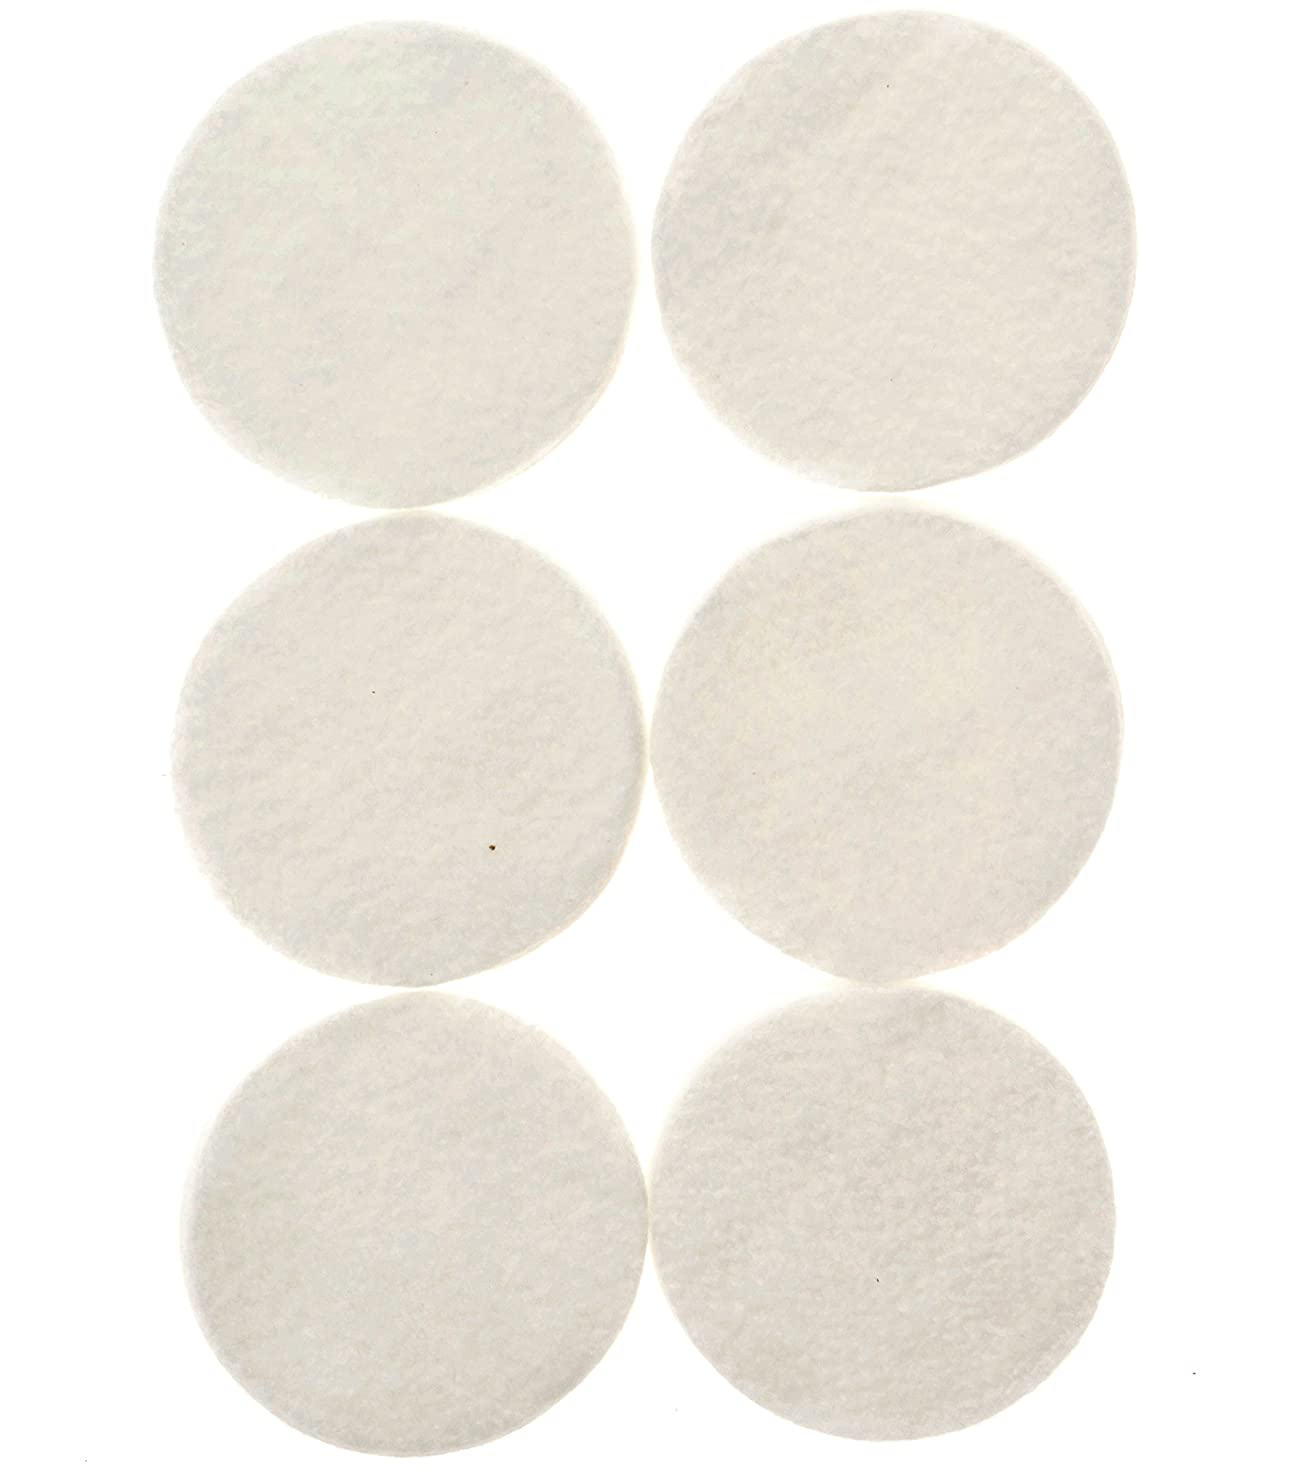 6-Pack of Filtron-Compatible Replacement Filter Pads for the Filtron Cold Water Coffee Concentrate Brewer - By Impresa Products